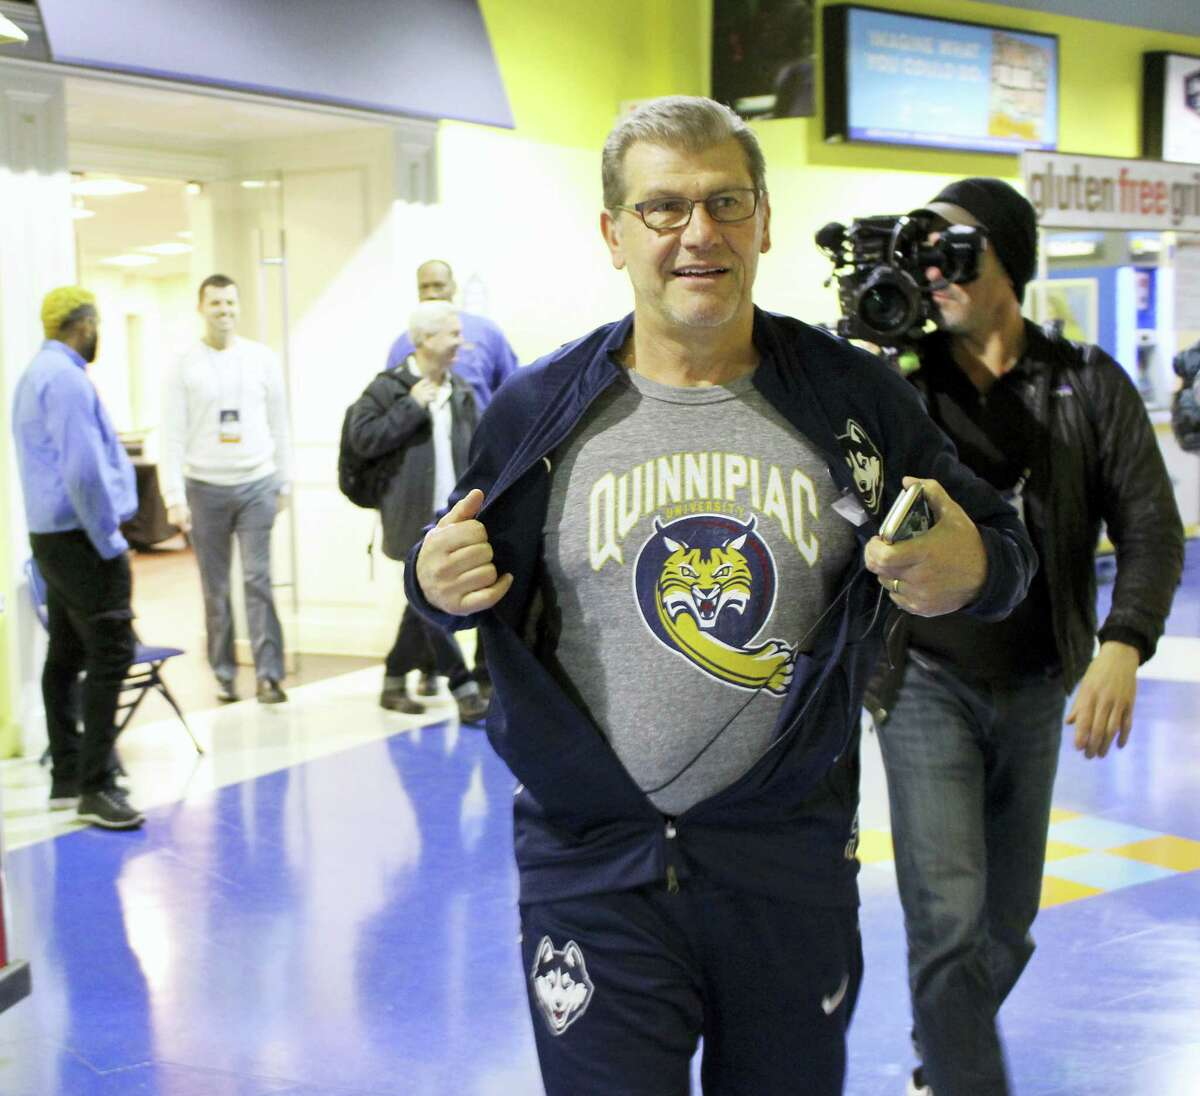 UConn coach Geno Auriemma displays a Quinnipiac University T-shirt Friday in Bridgeport. This is the first year both Connecticut schools have made it as far as the NCAA regional semifinals.